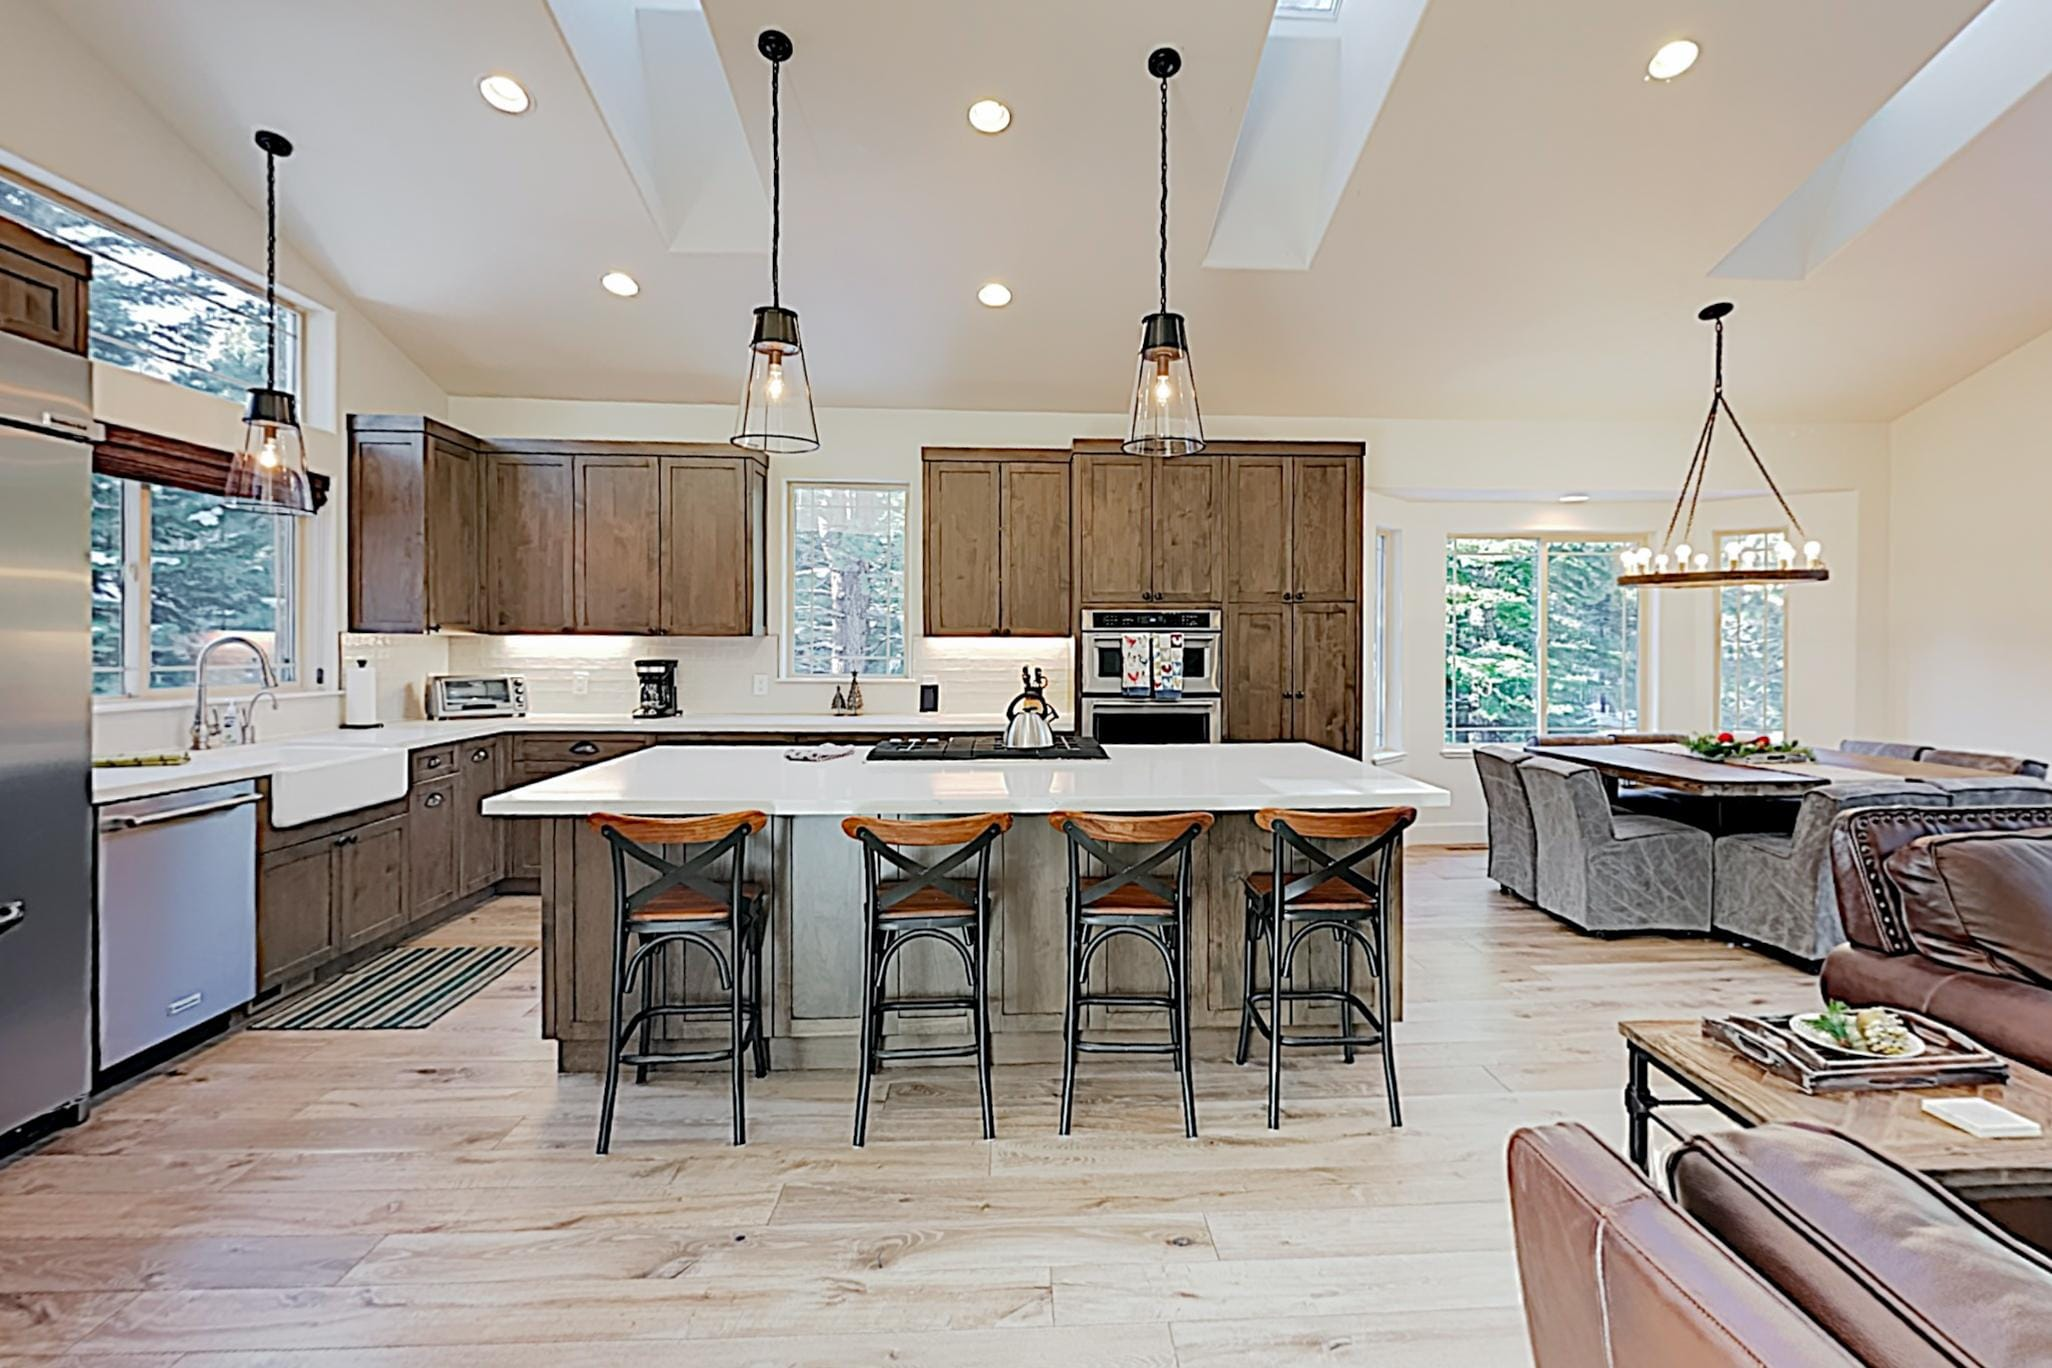 The kitchen is a show-stopper with a large center island and seating for 4.